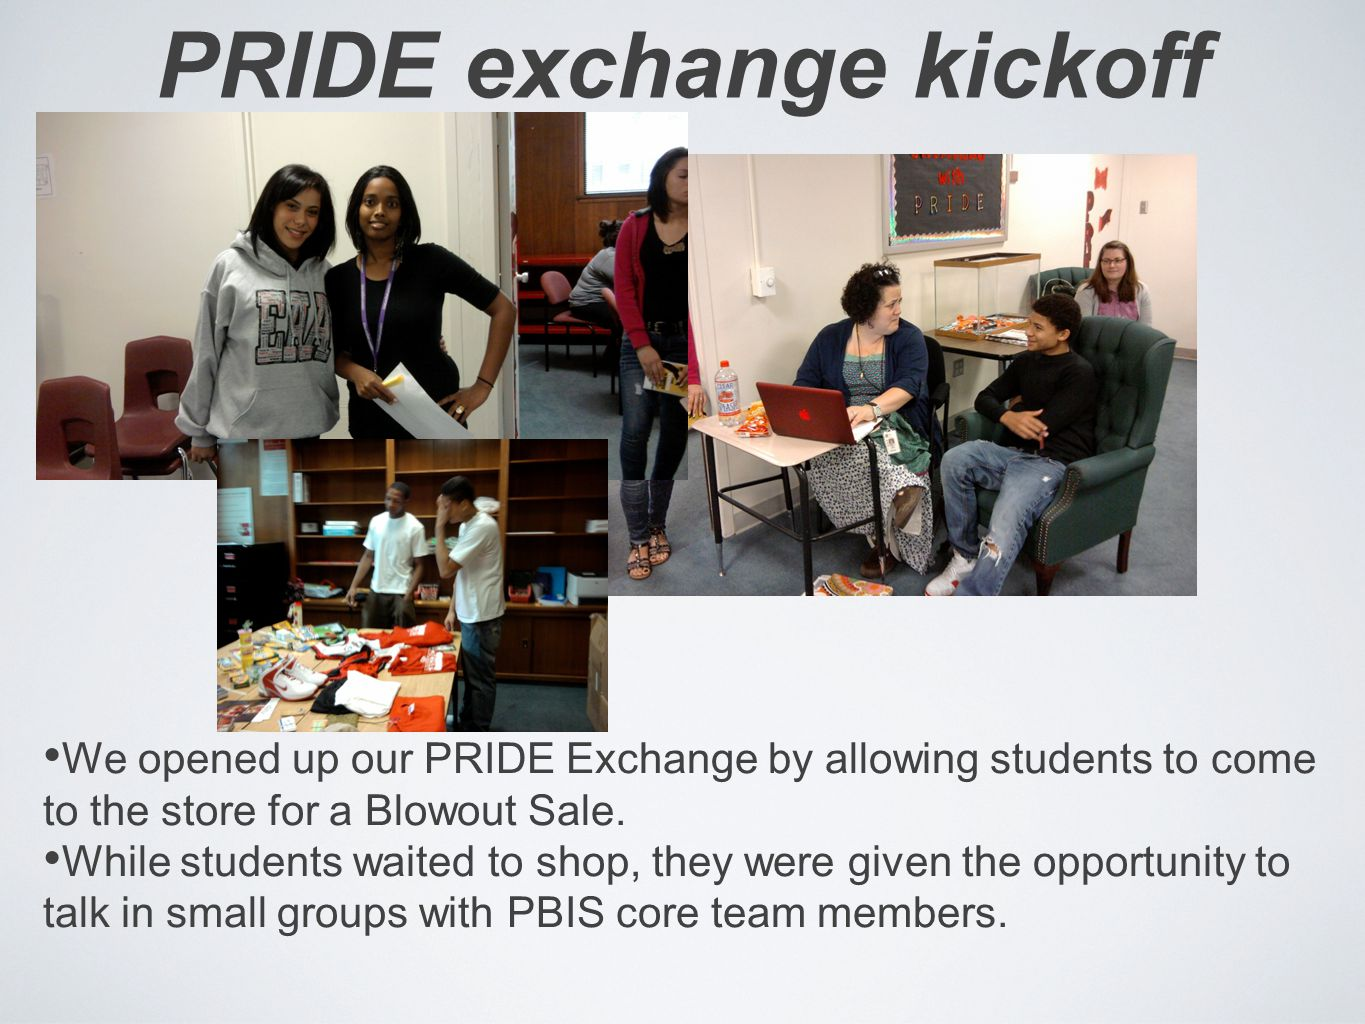 PRIDE exchange kickoff We opened up our PRIDE Exchange by allowing students to come to the store for a Blowout Sale. While students waited to shop, th